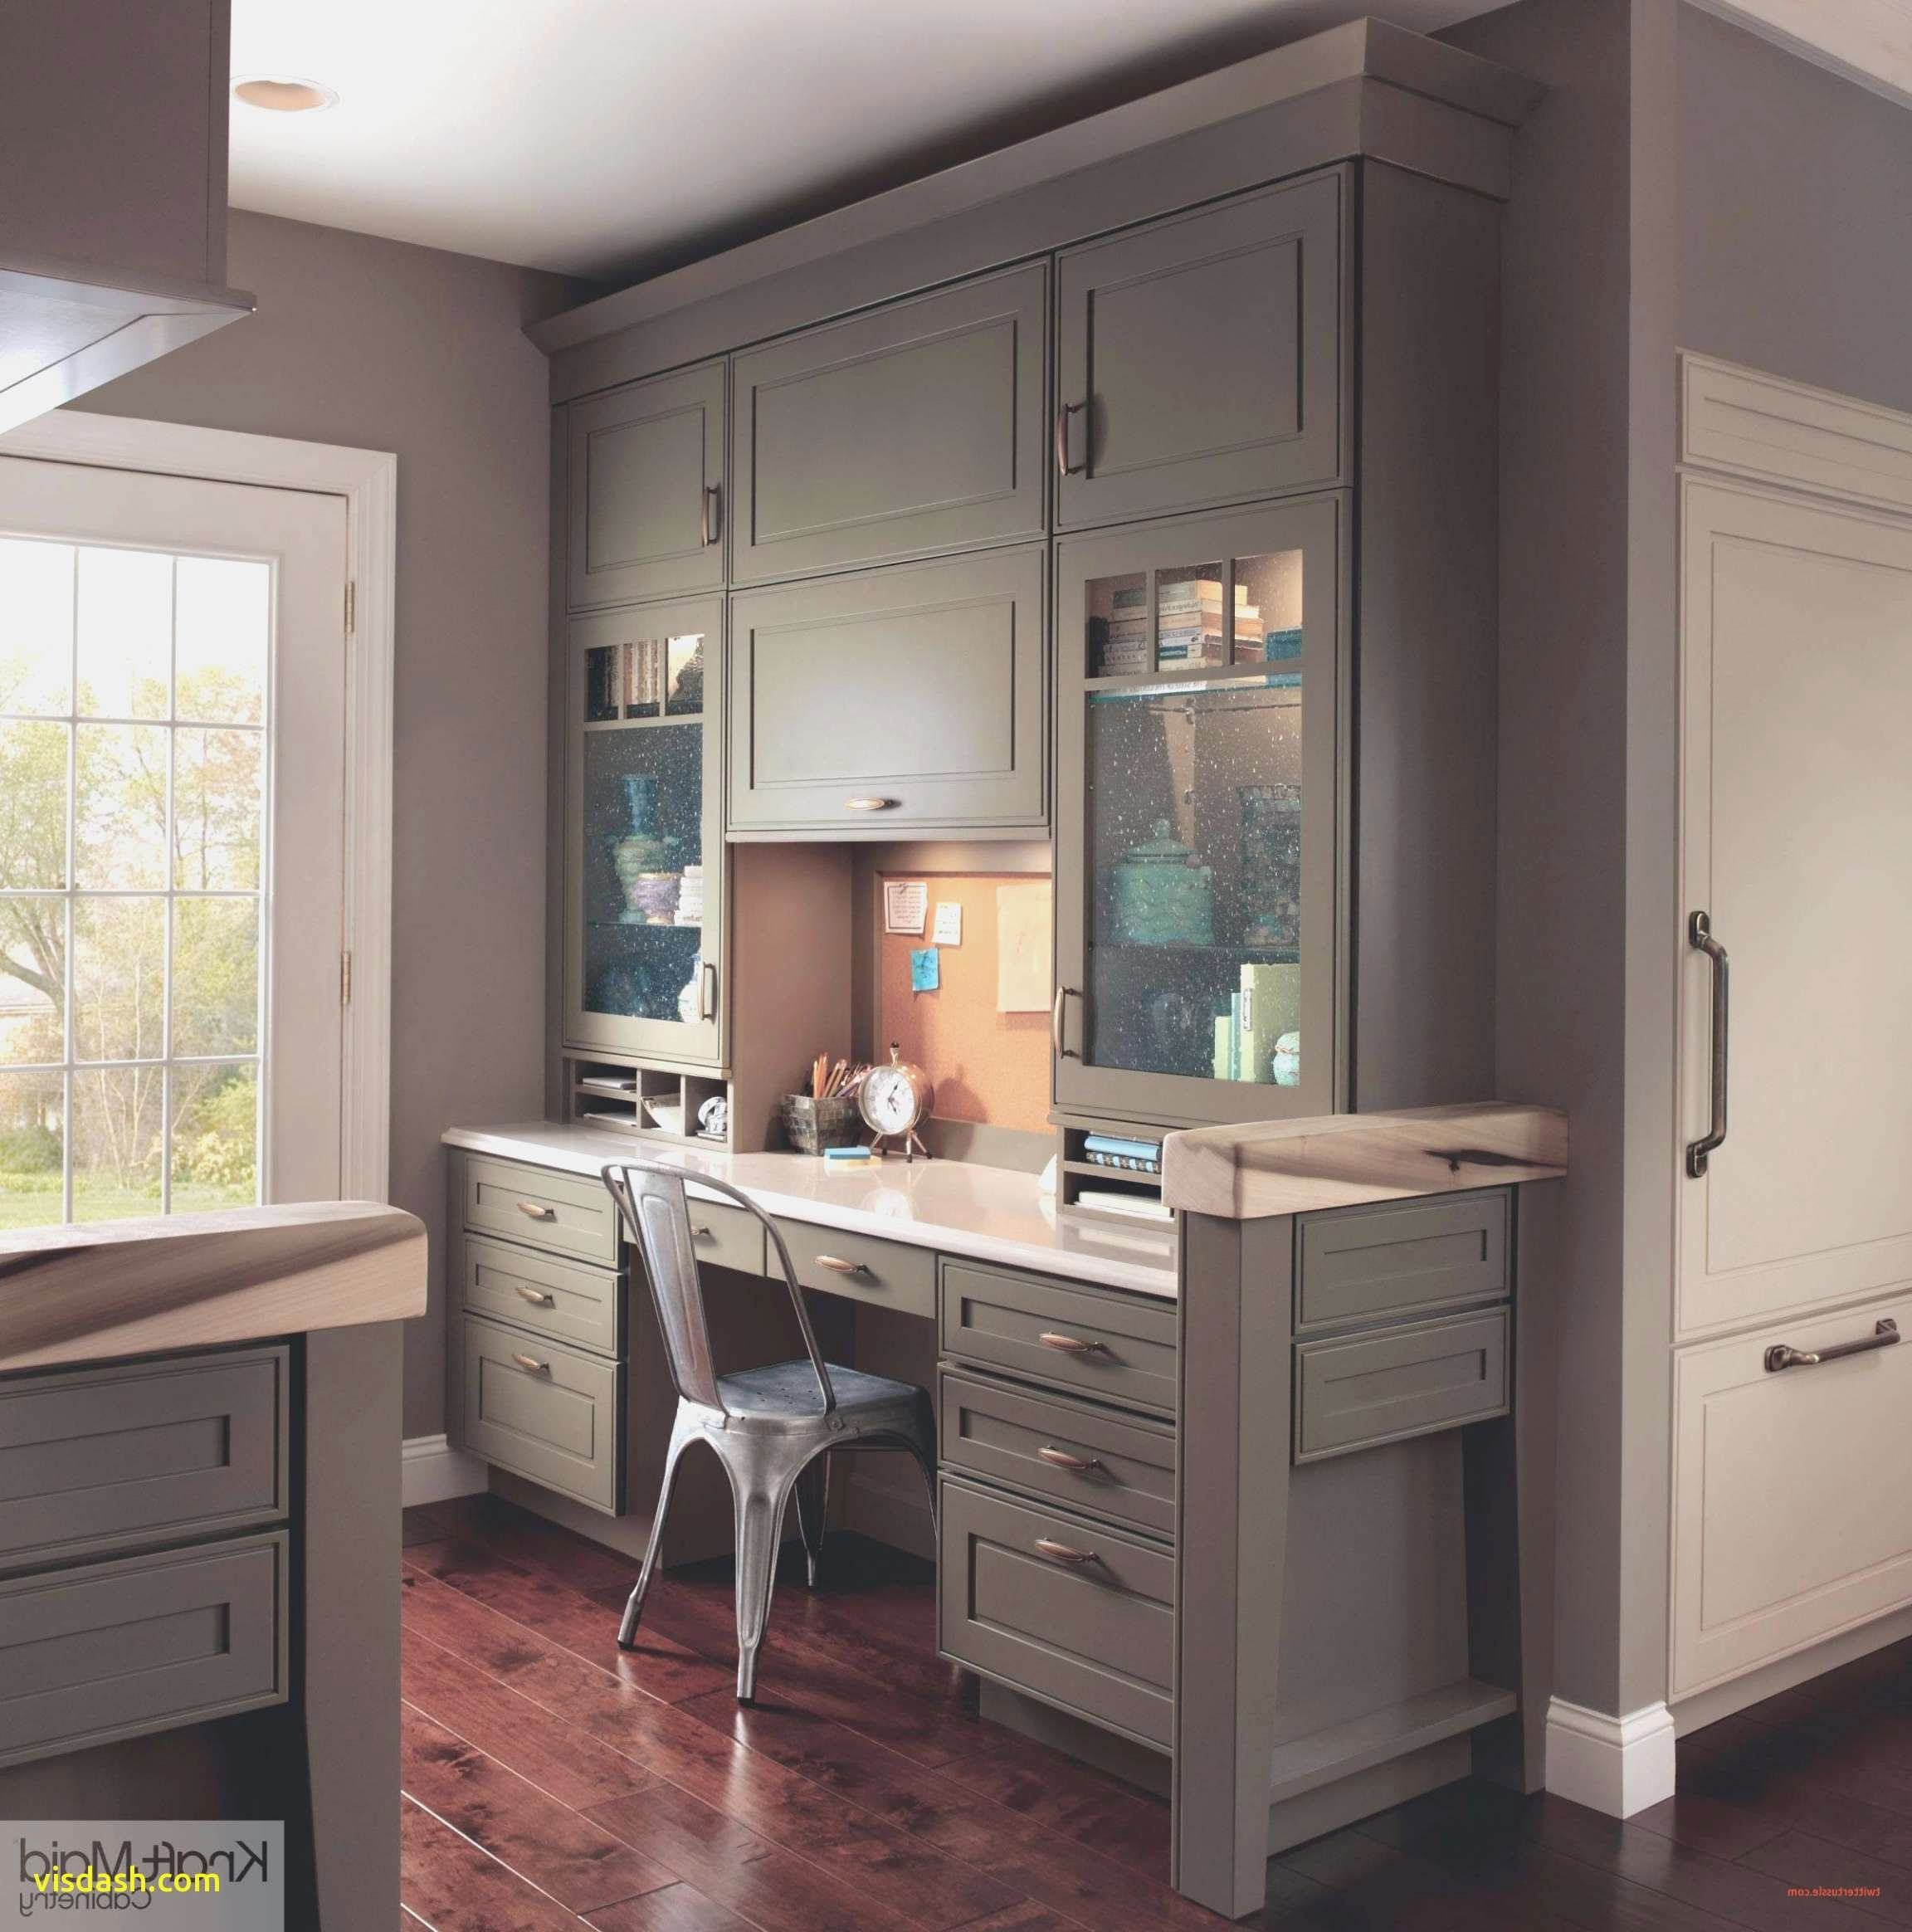 Interesting 70 Small Apartment Kitchen Ideas Budget In 53 Awesome Opnodes